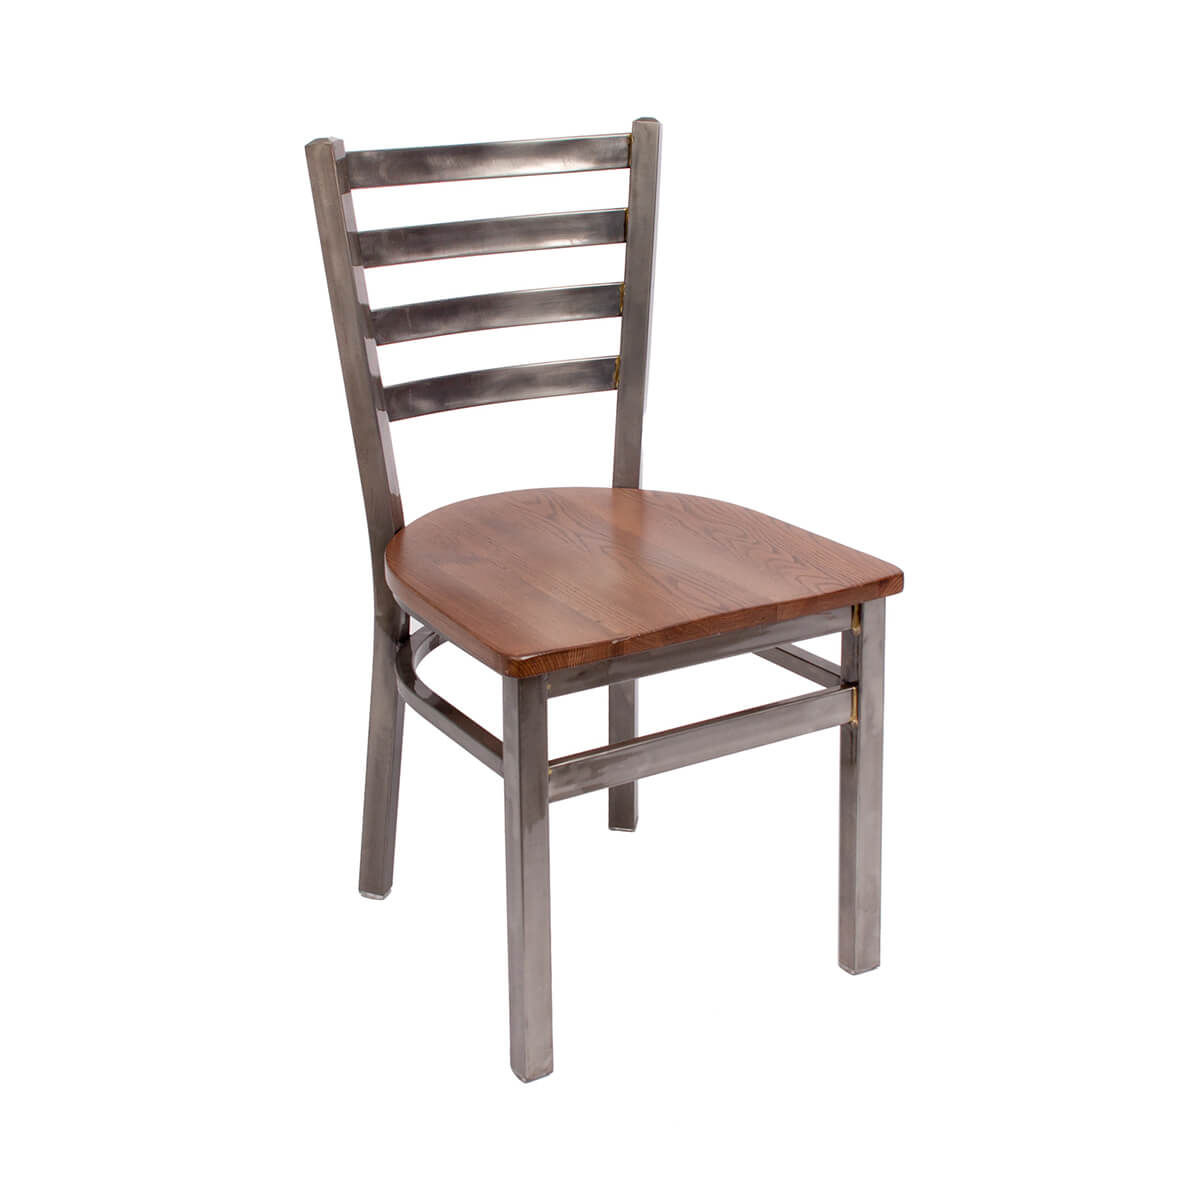 All Equip Inc. Commercial Chairs